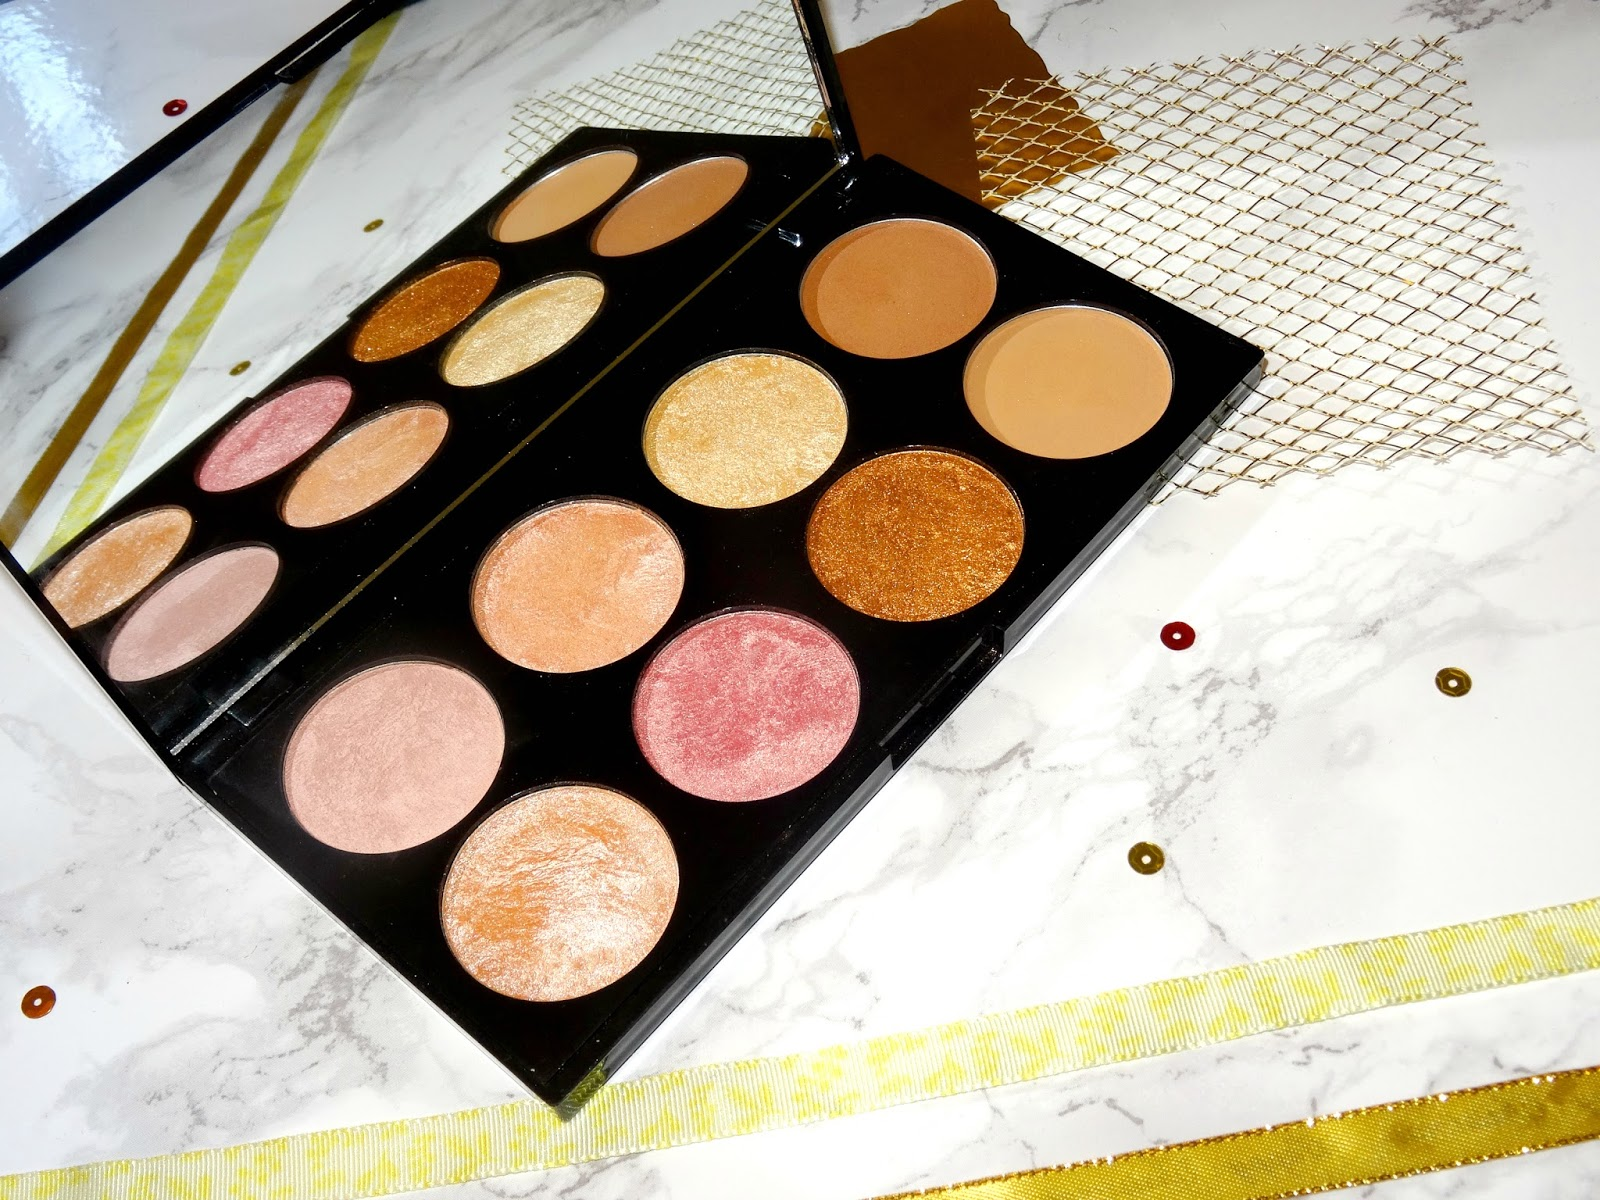 Makeup Revolution Golden Sugar 2 Ultra Blush Palette Review